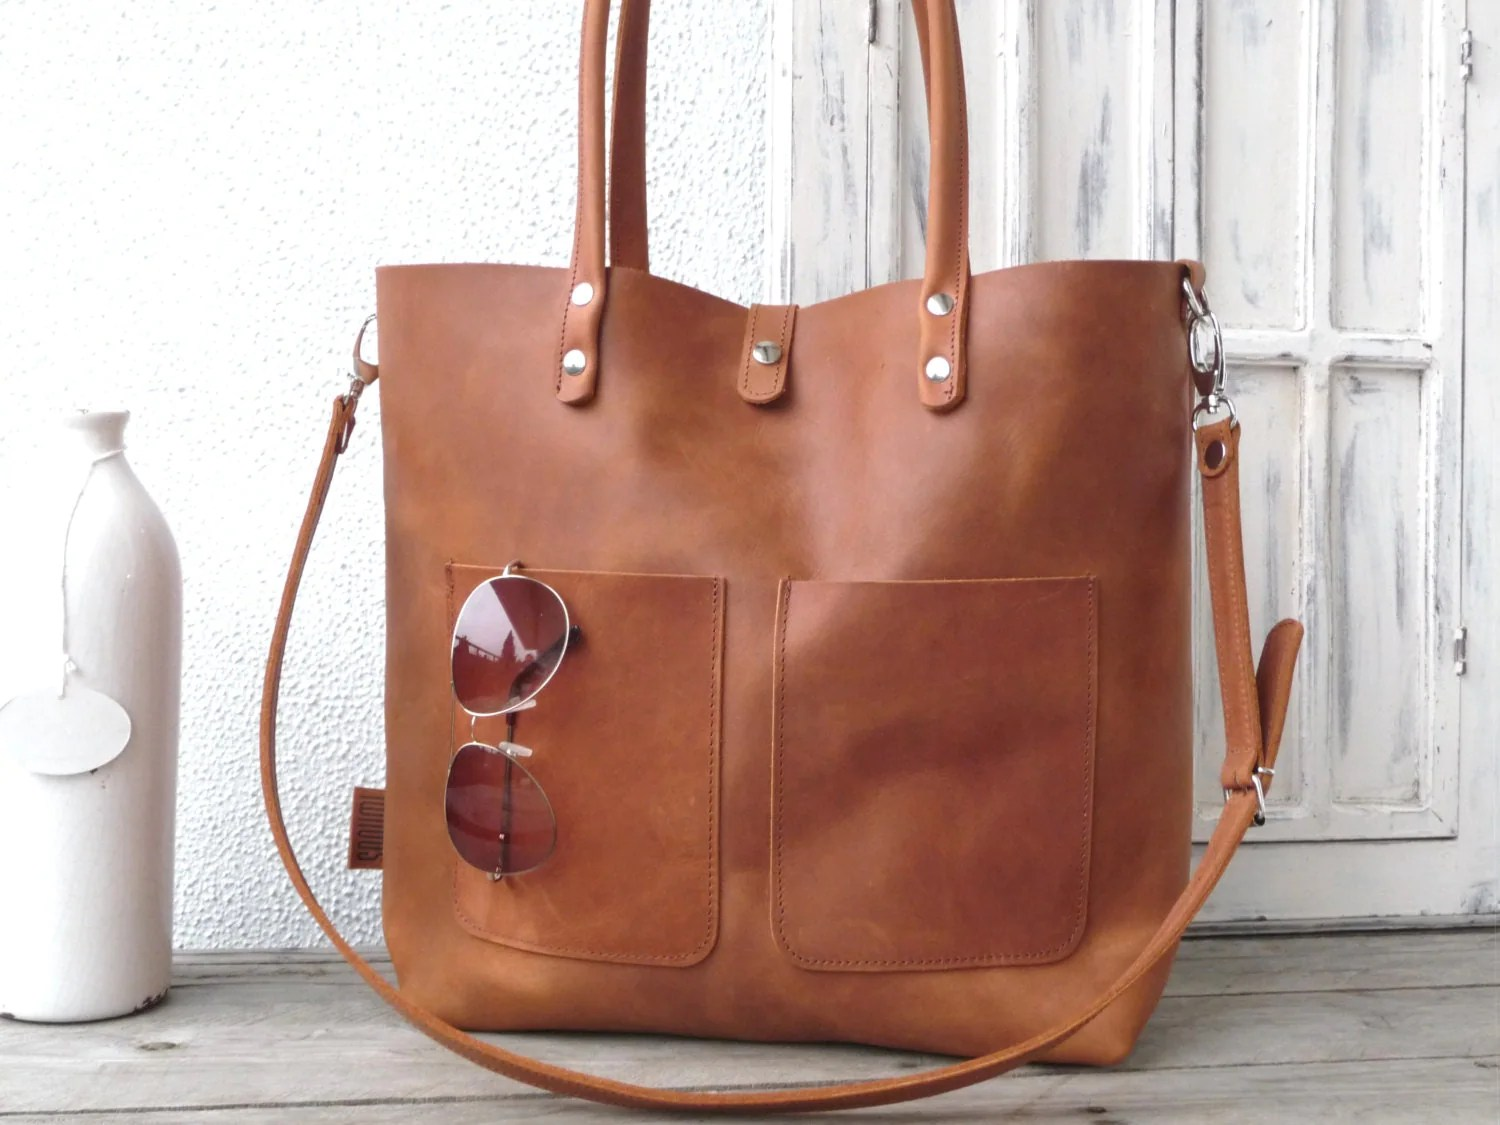 Tote Bags For Uni Leather Bag Large Leather Bag Big Leather Bag Leather Bag